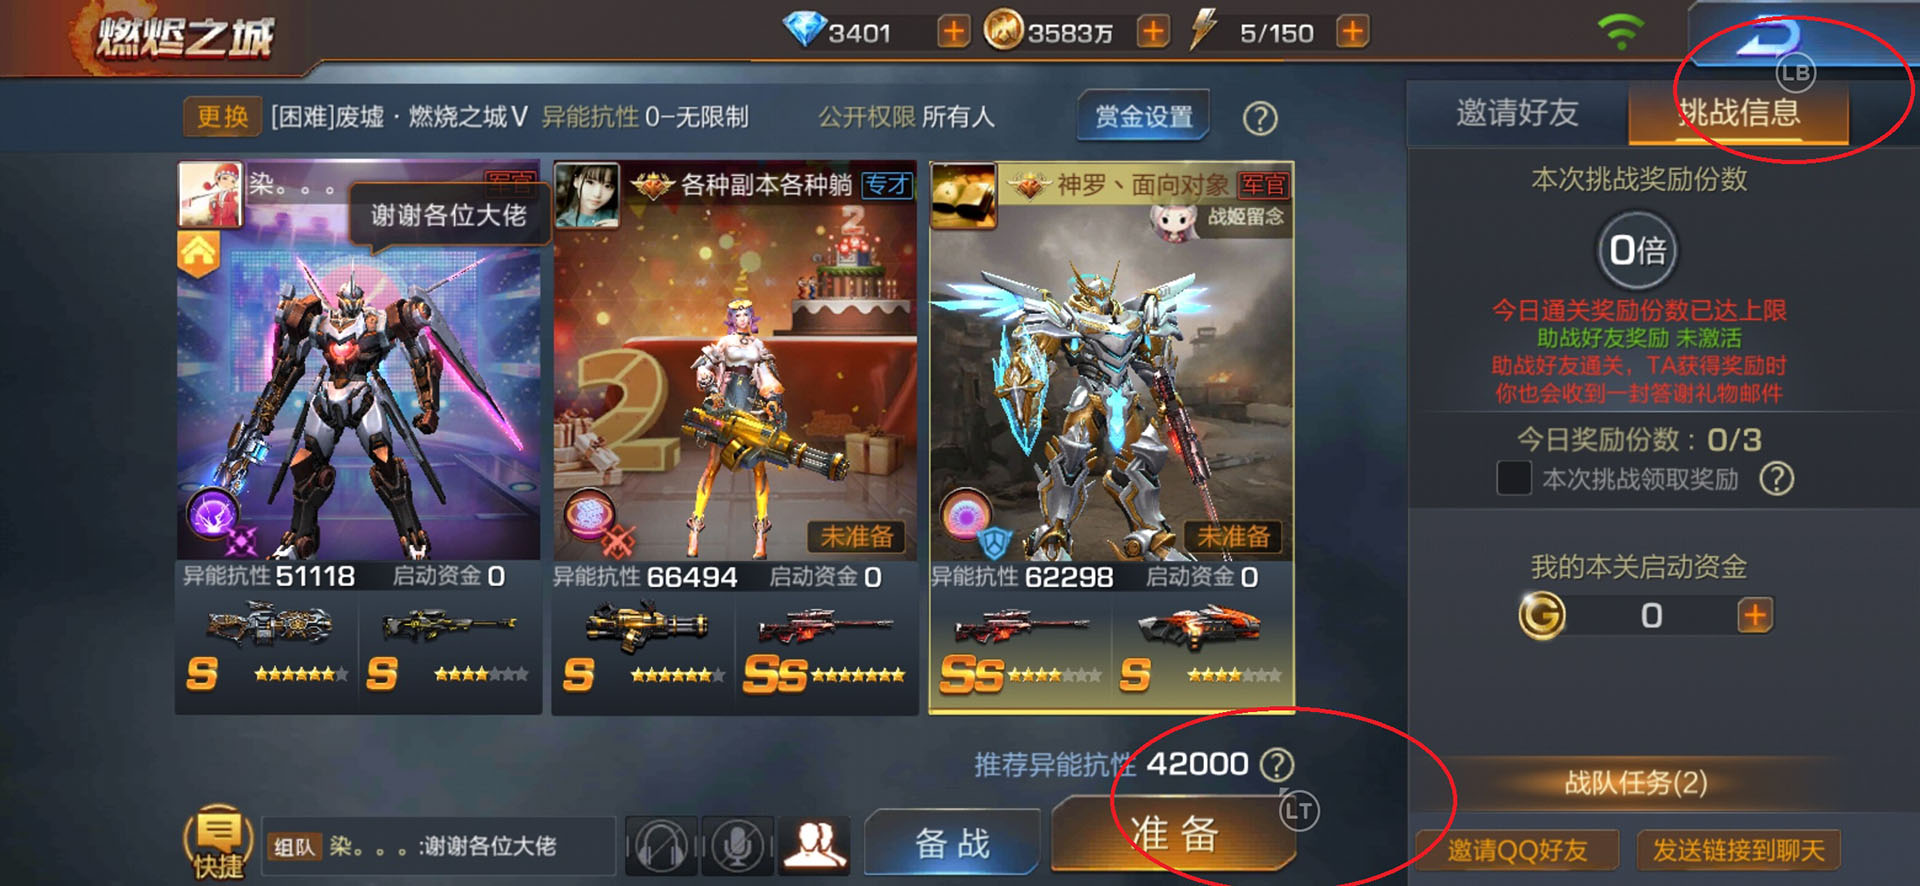 Screenshot_20190610_204130_com.tencent.shootgame.jpg